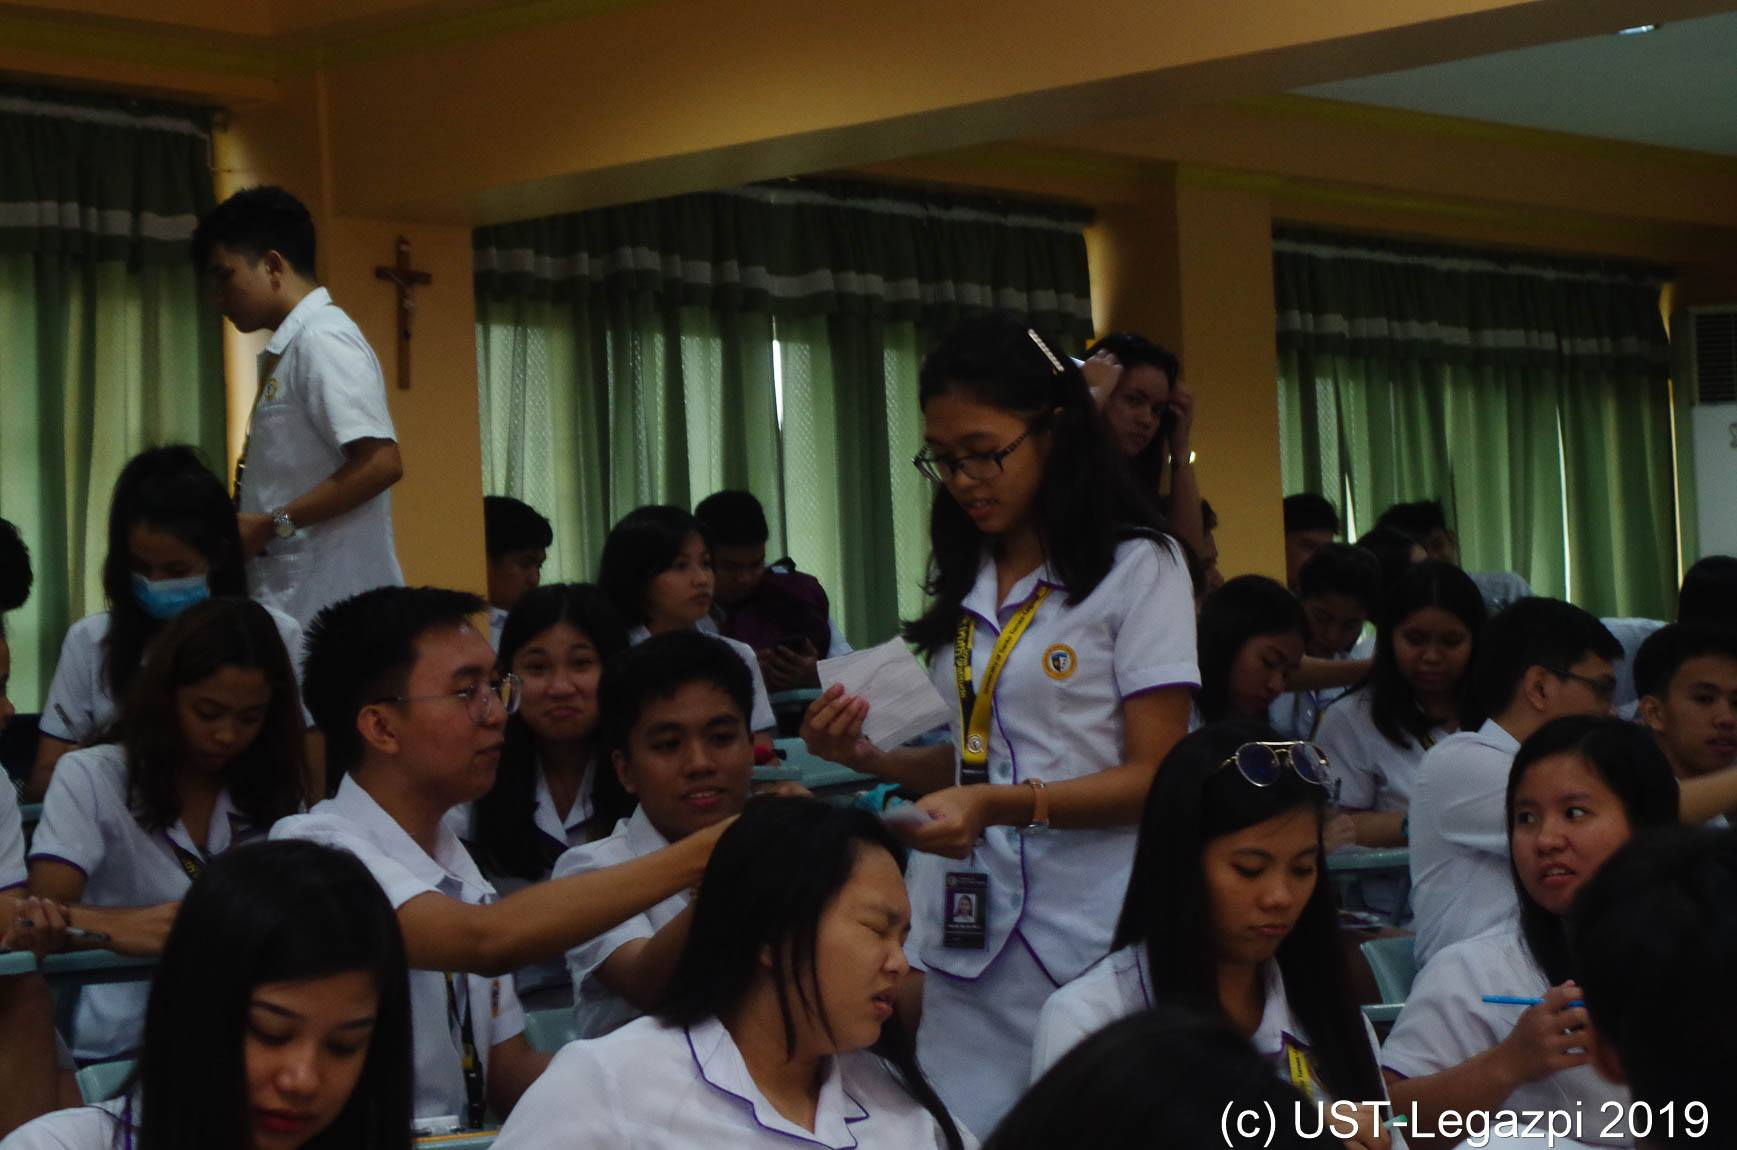 Rector with the NSTP students